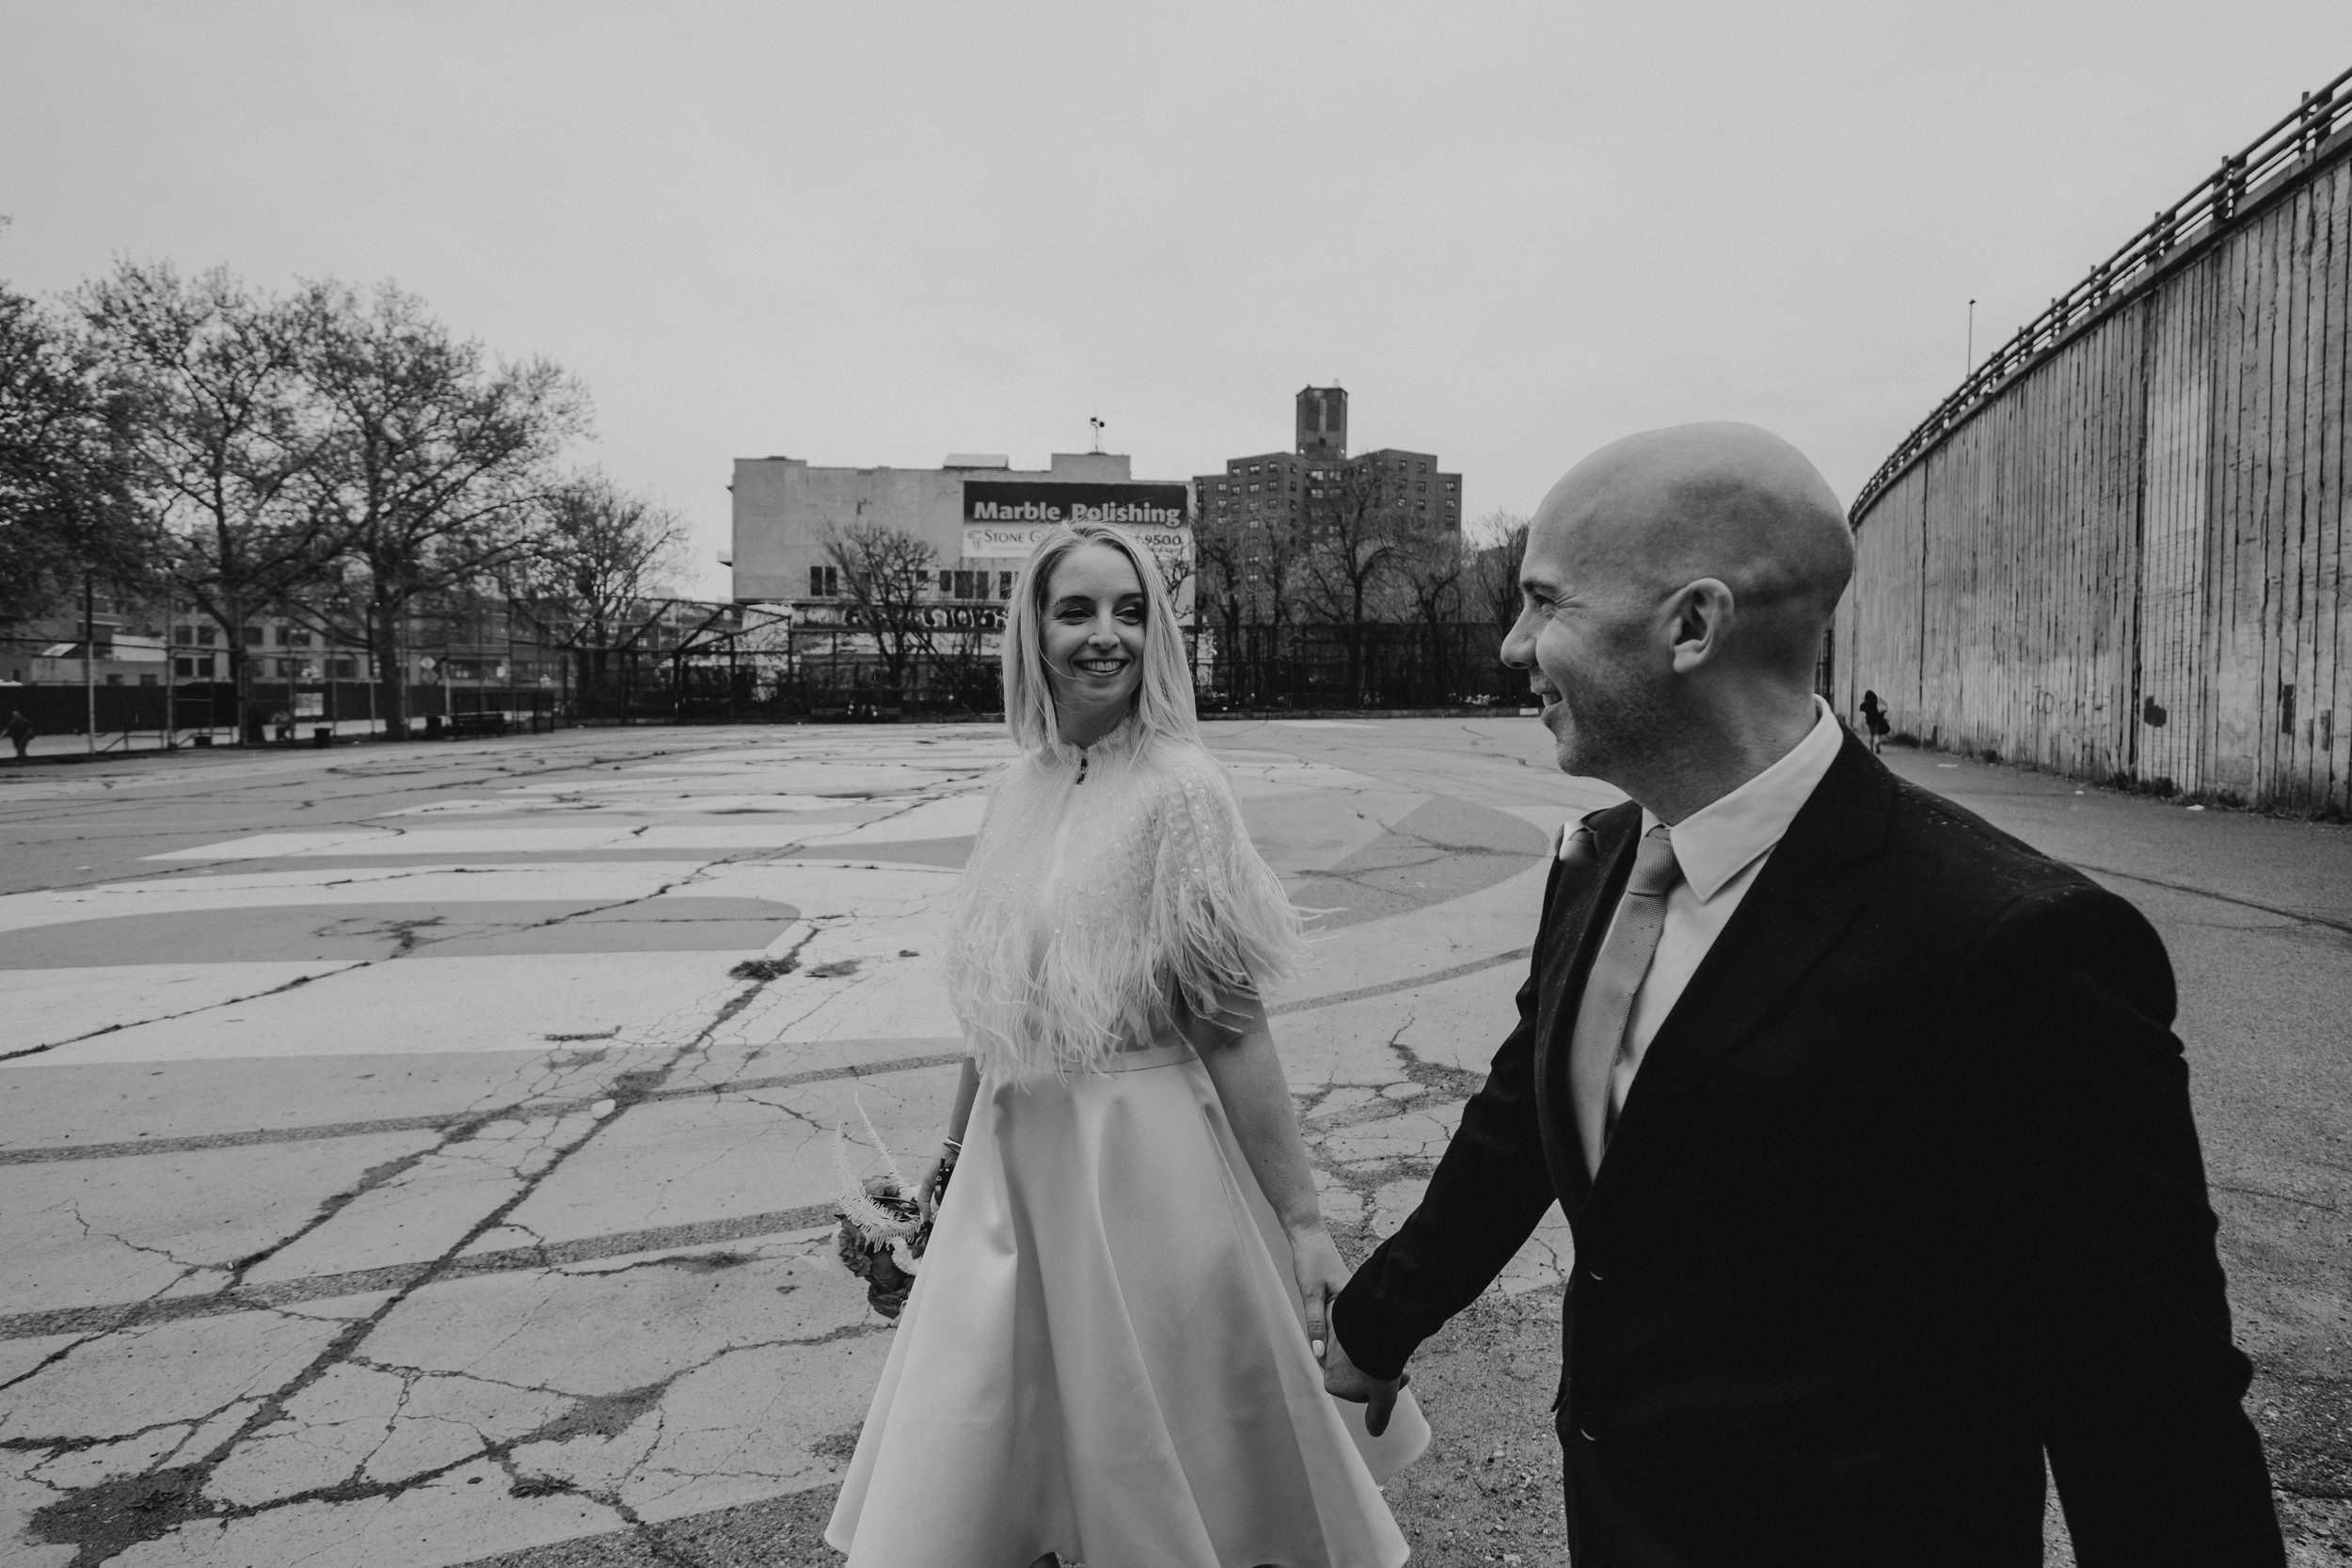 Brooklyn_City_Hall_Elopement_Photographer_Chellise_Michael_Photography238.JPG